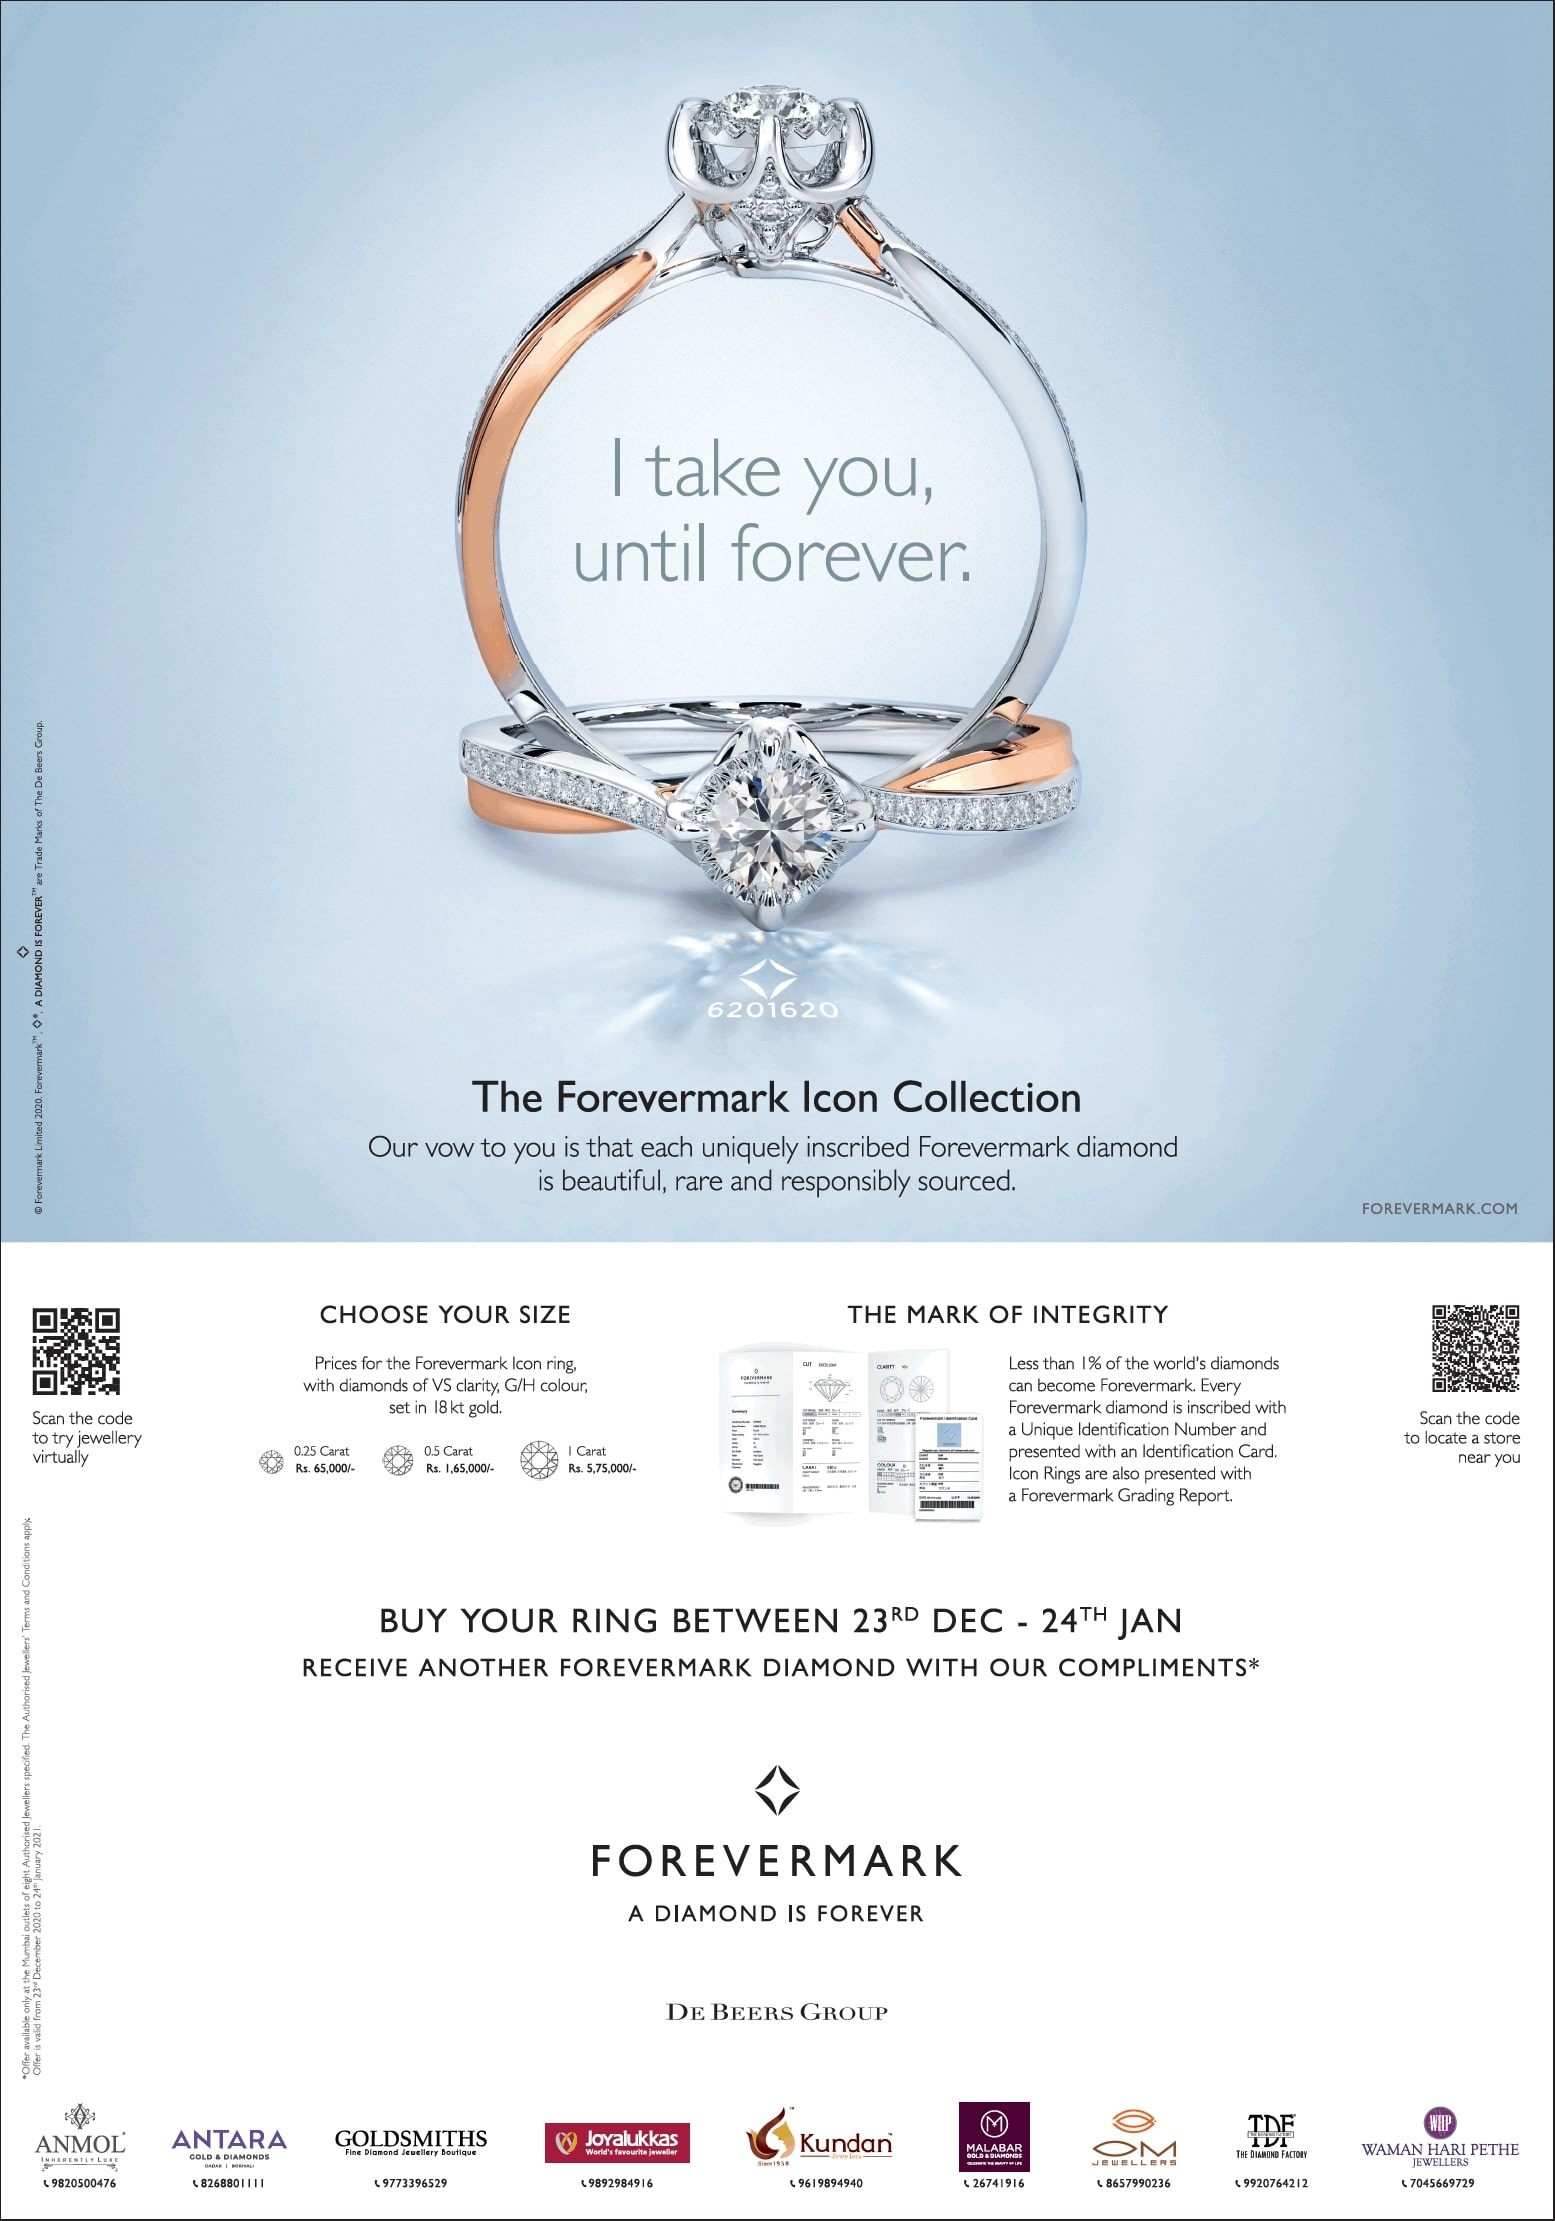 Forevermark-The-Forevermark-Icon-Collection-Ad-Times-Of-India-Mumbai-30-12-2020